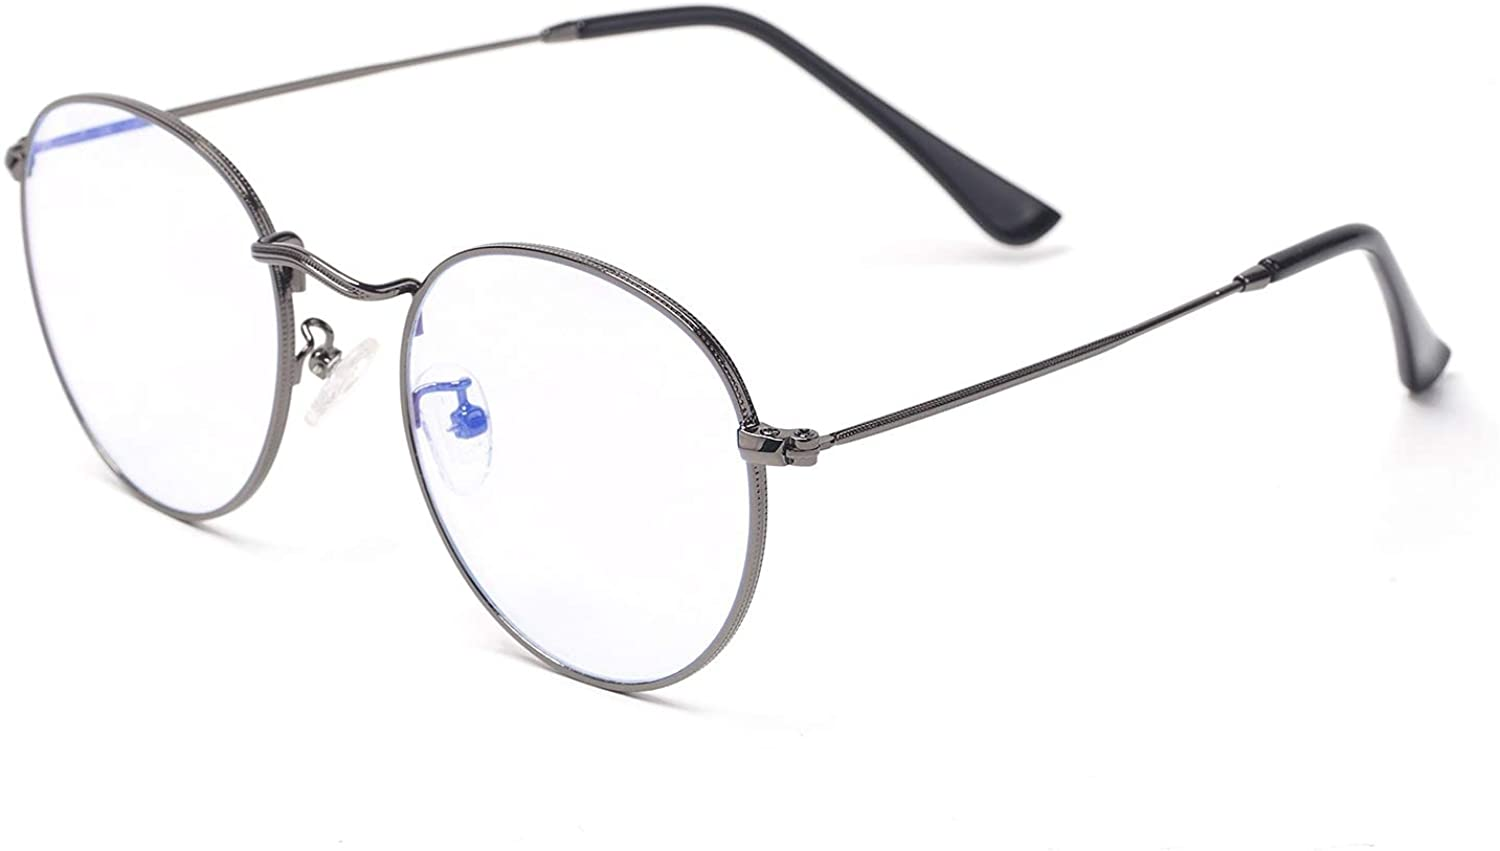 Holtmance all-metal blue light glasses in gray